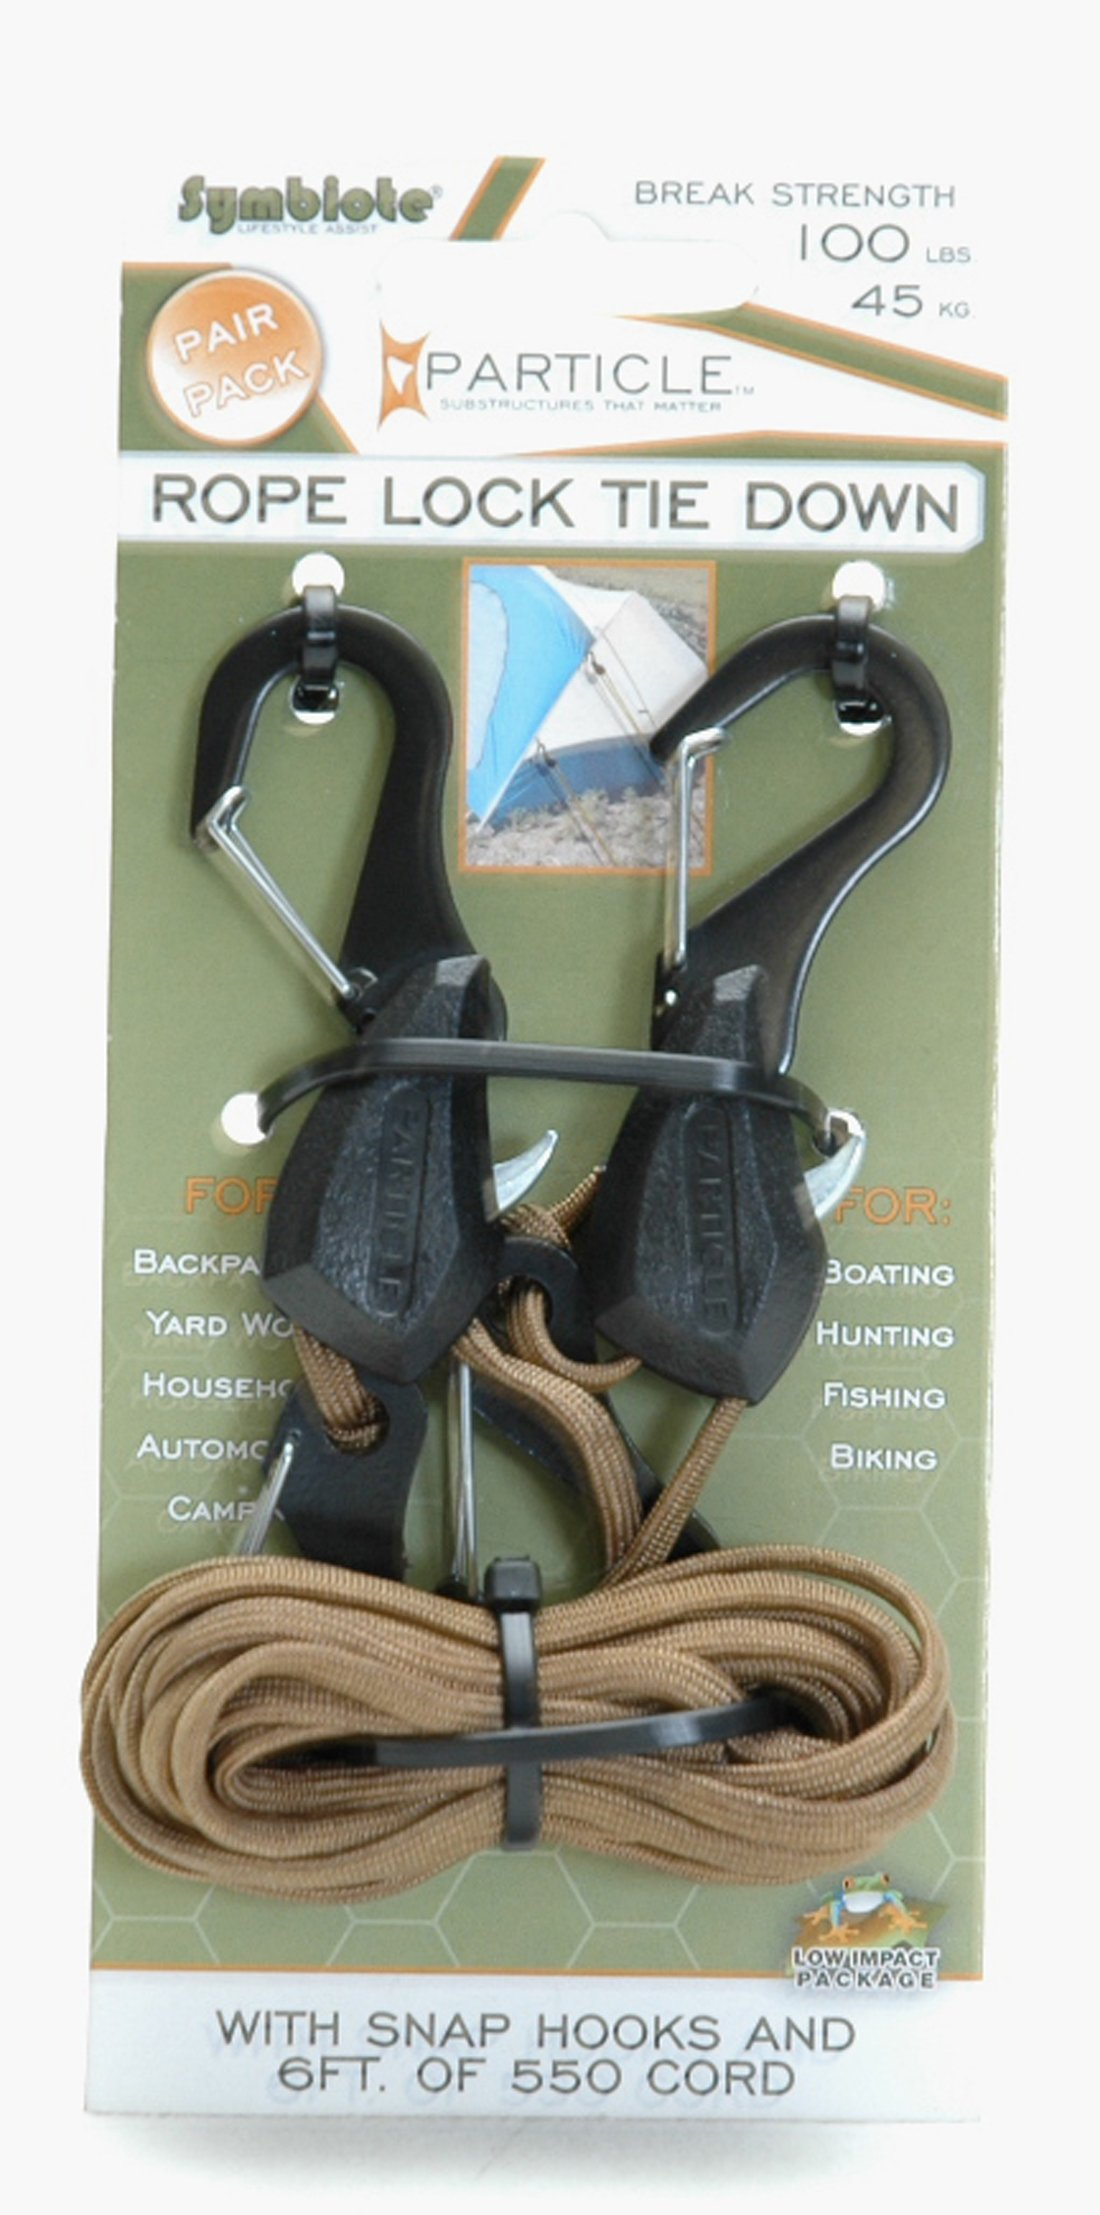 Pack of 2 PROGRIP 056230 Better Than Bungee Rope Lock Tie Down with Snap Hooks 6 Blue Paracord